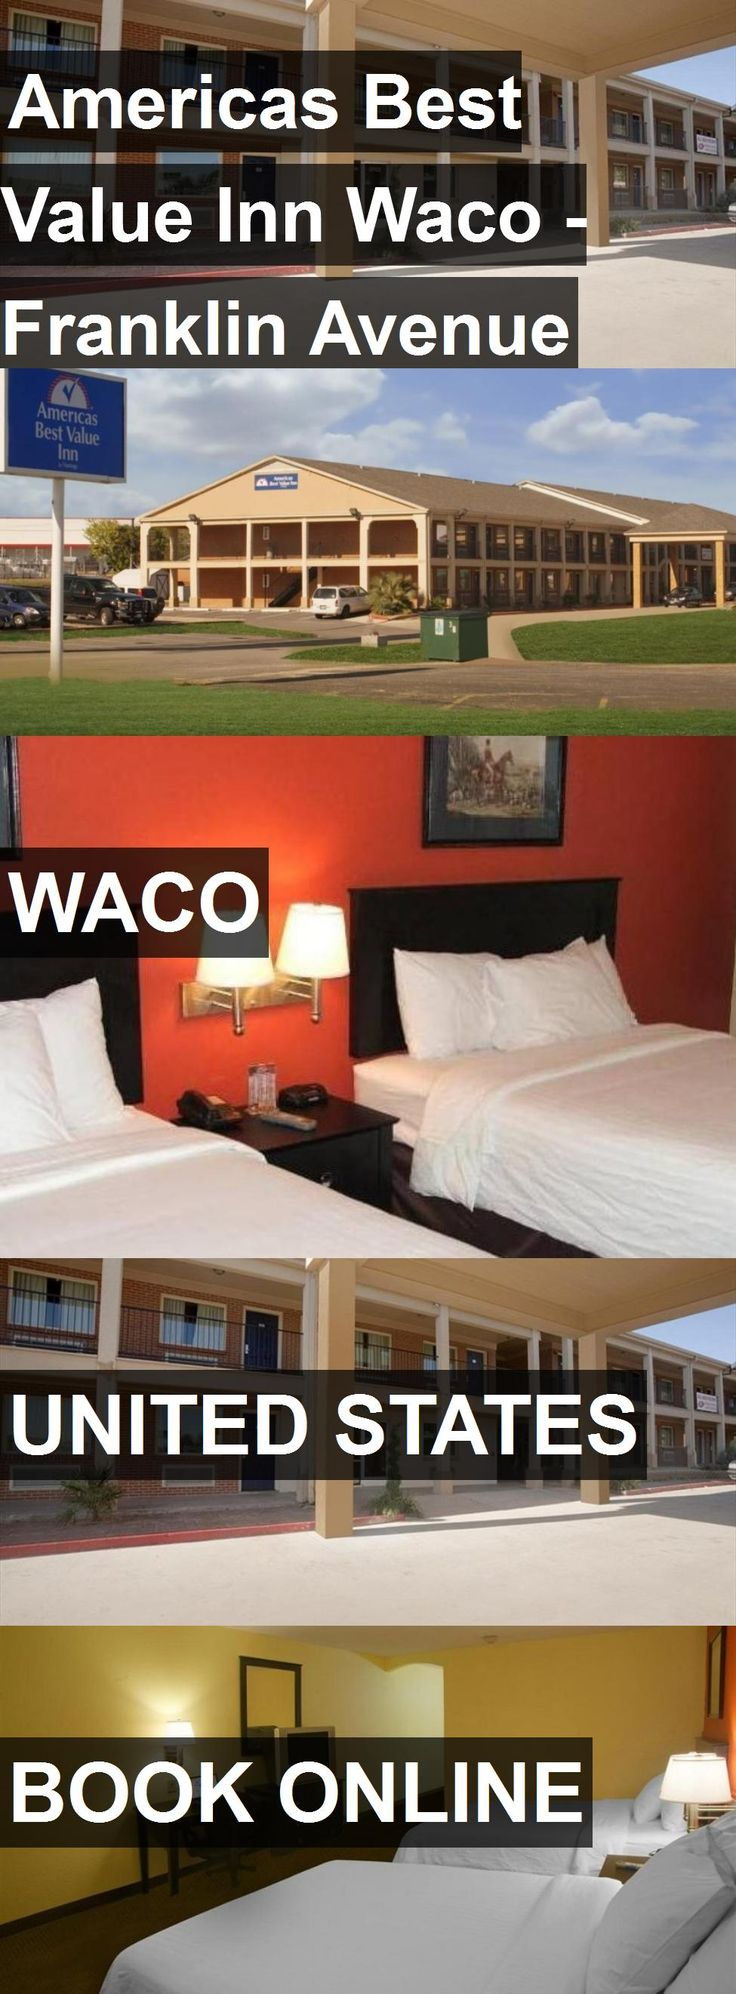 Hotel Americas Best Value Inn Waco - Franklin Avenue in Waco, United States. For more information, photos, reviews and best prices please follow the link. #UnitedStates #Waco #travel #vacation #hotel